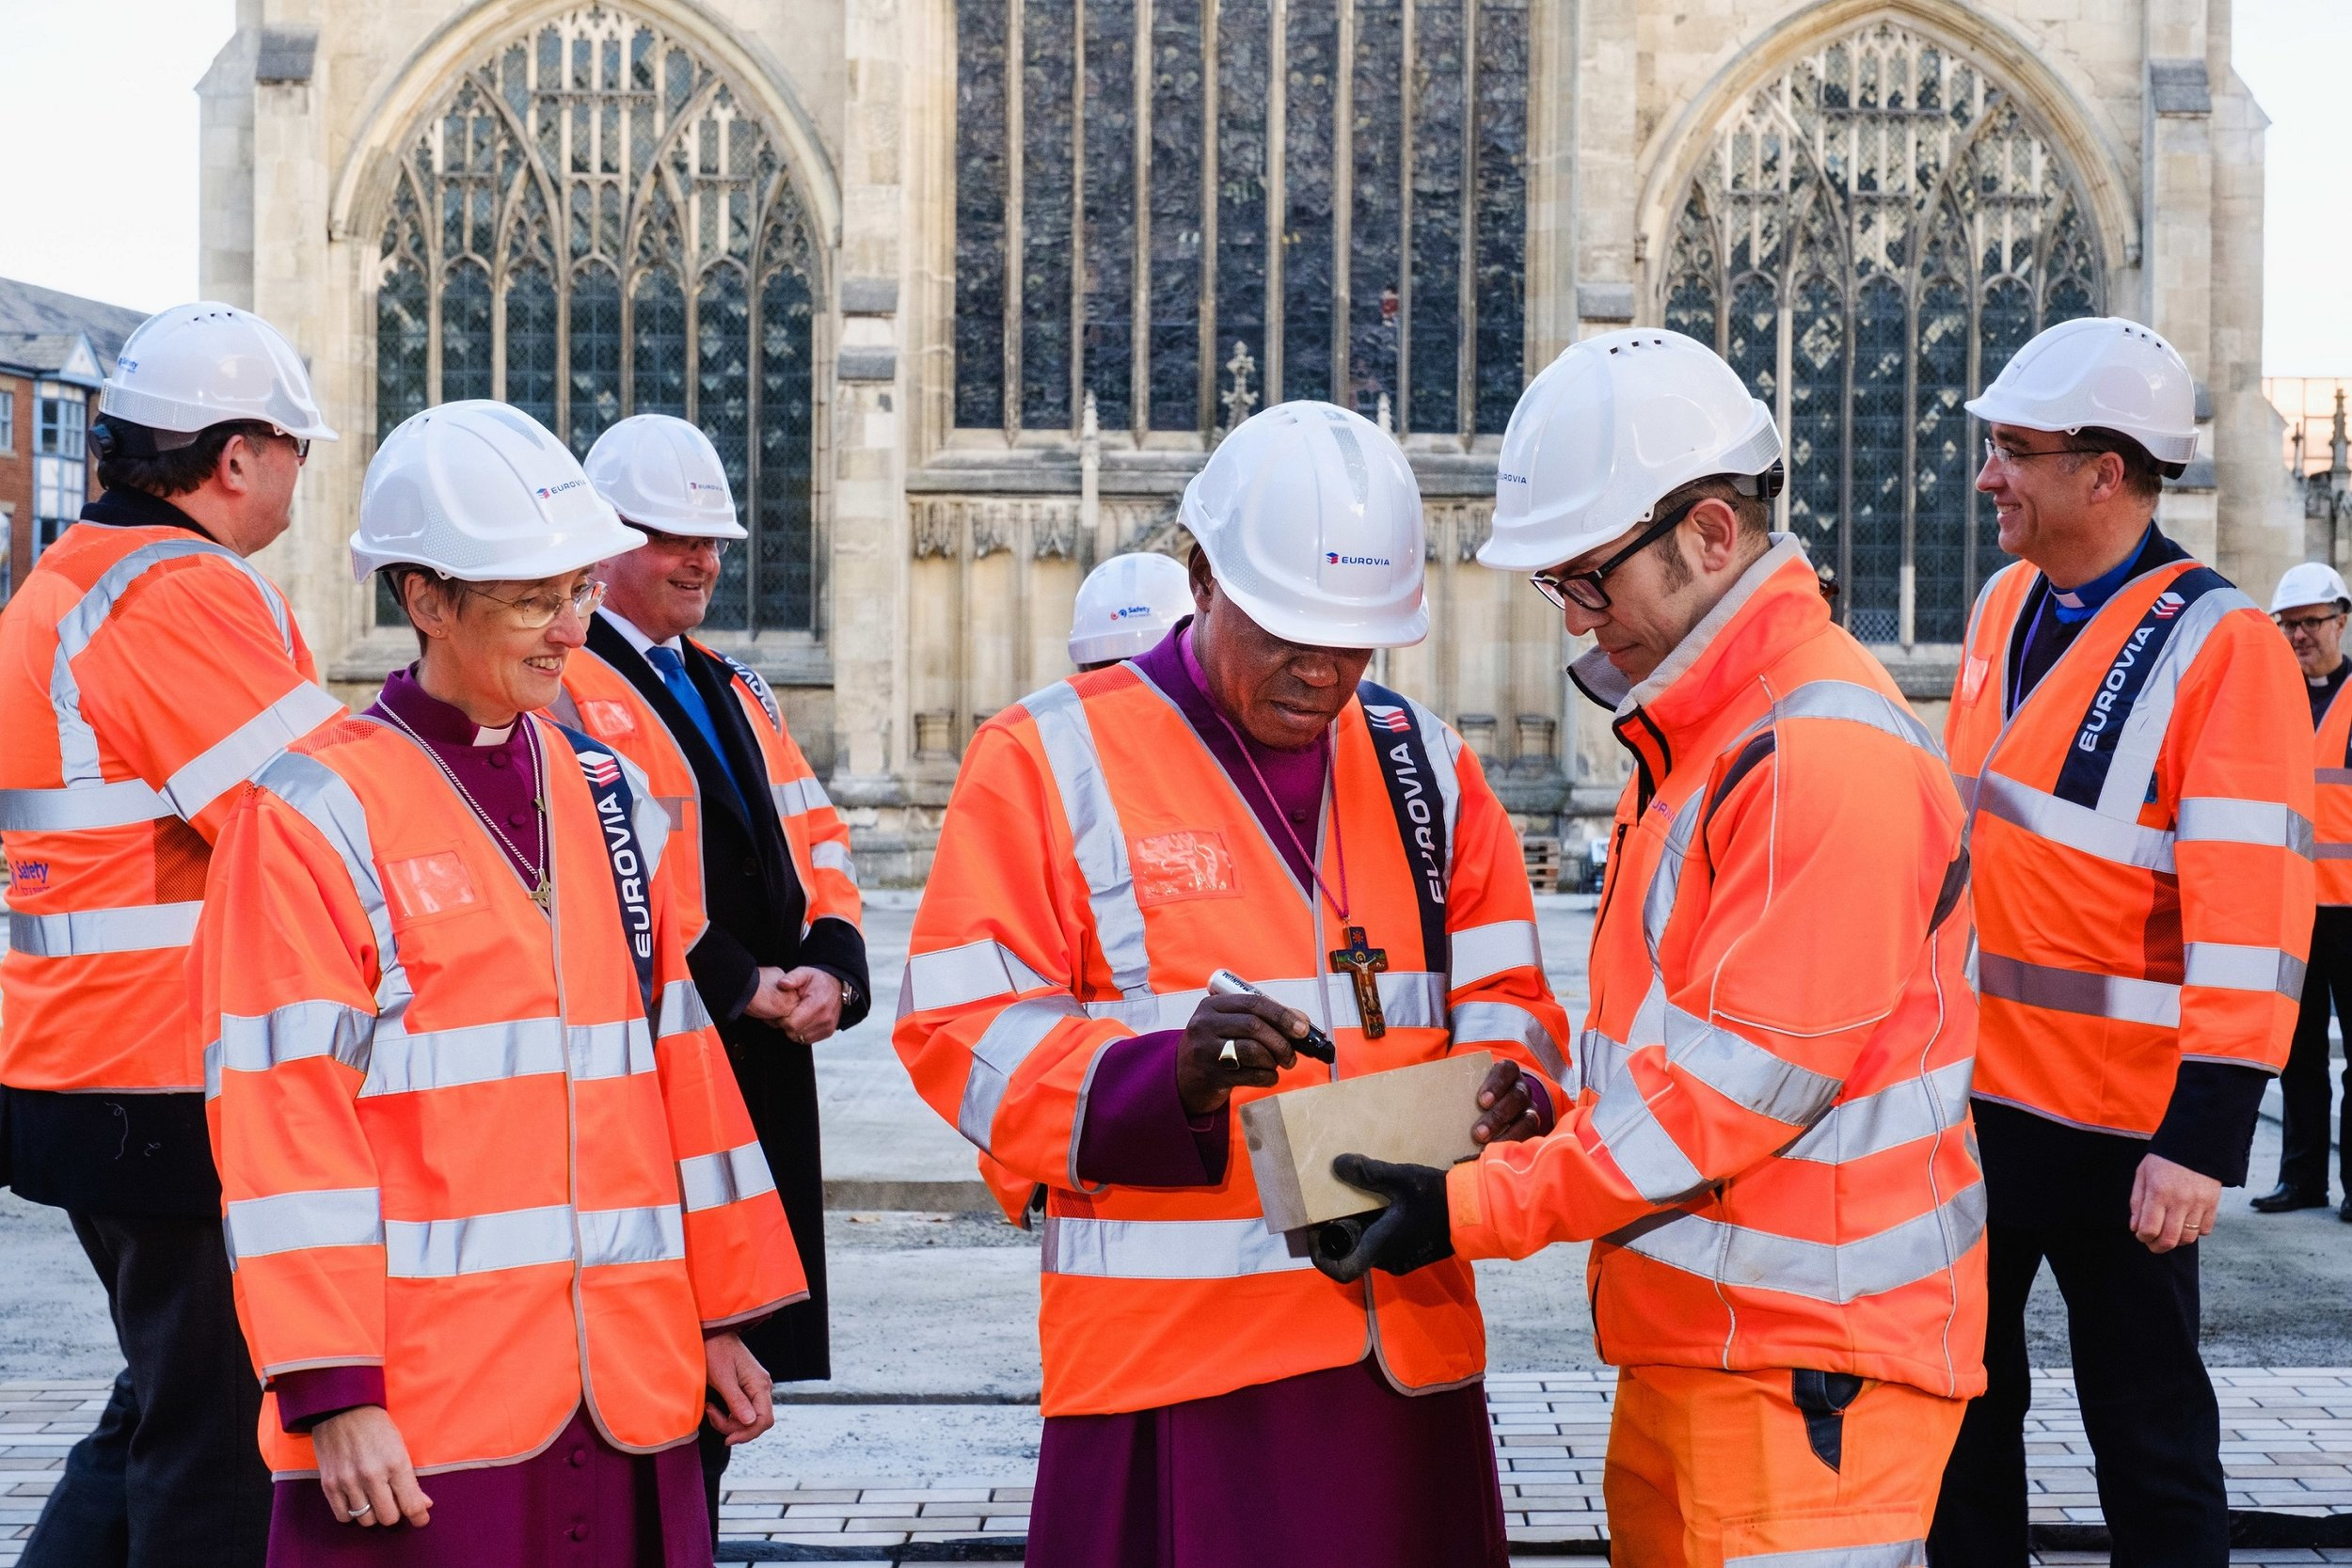 The Archbishop signs a paving stone in the presence of the Bishop of Hull, the Right Reverend Alison White, and Tim Croft, Site Manager for the Trinity Square works being delivered by contractors Eurovia Contracting.